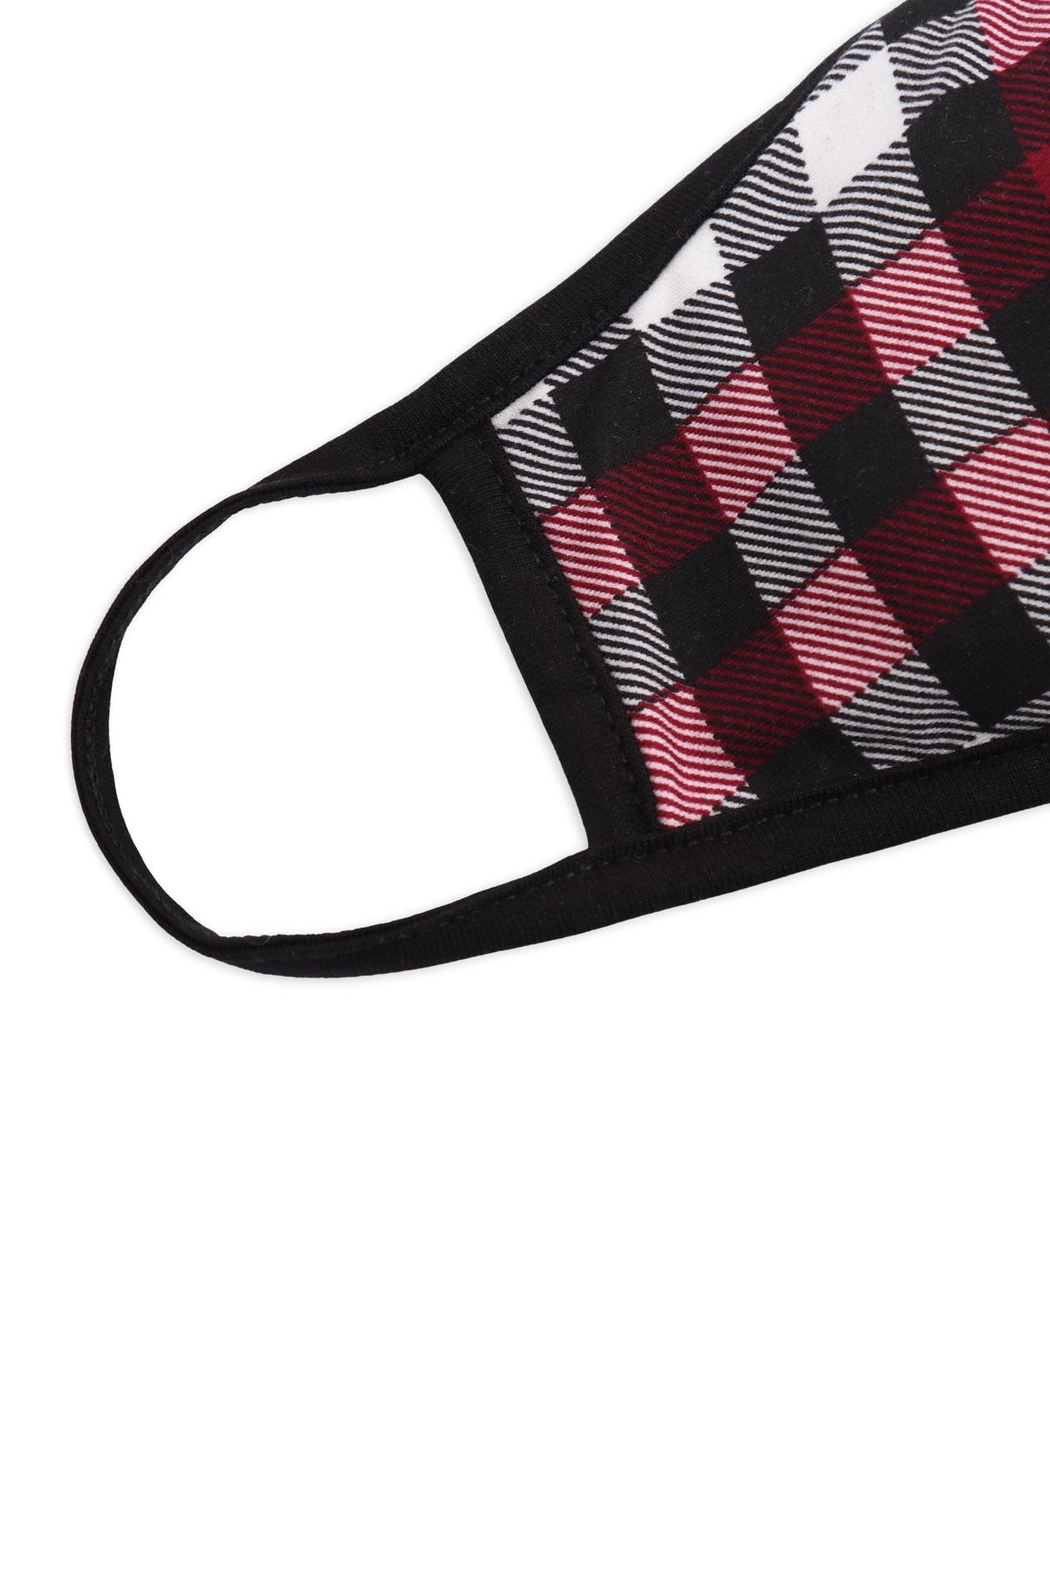 Riah Fashion Plaid-Printed-Reusable-Face-Masks-For-Adults - Front Full Image